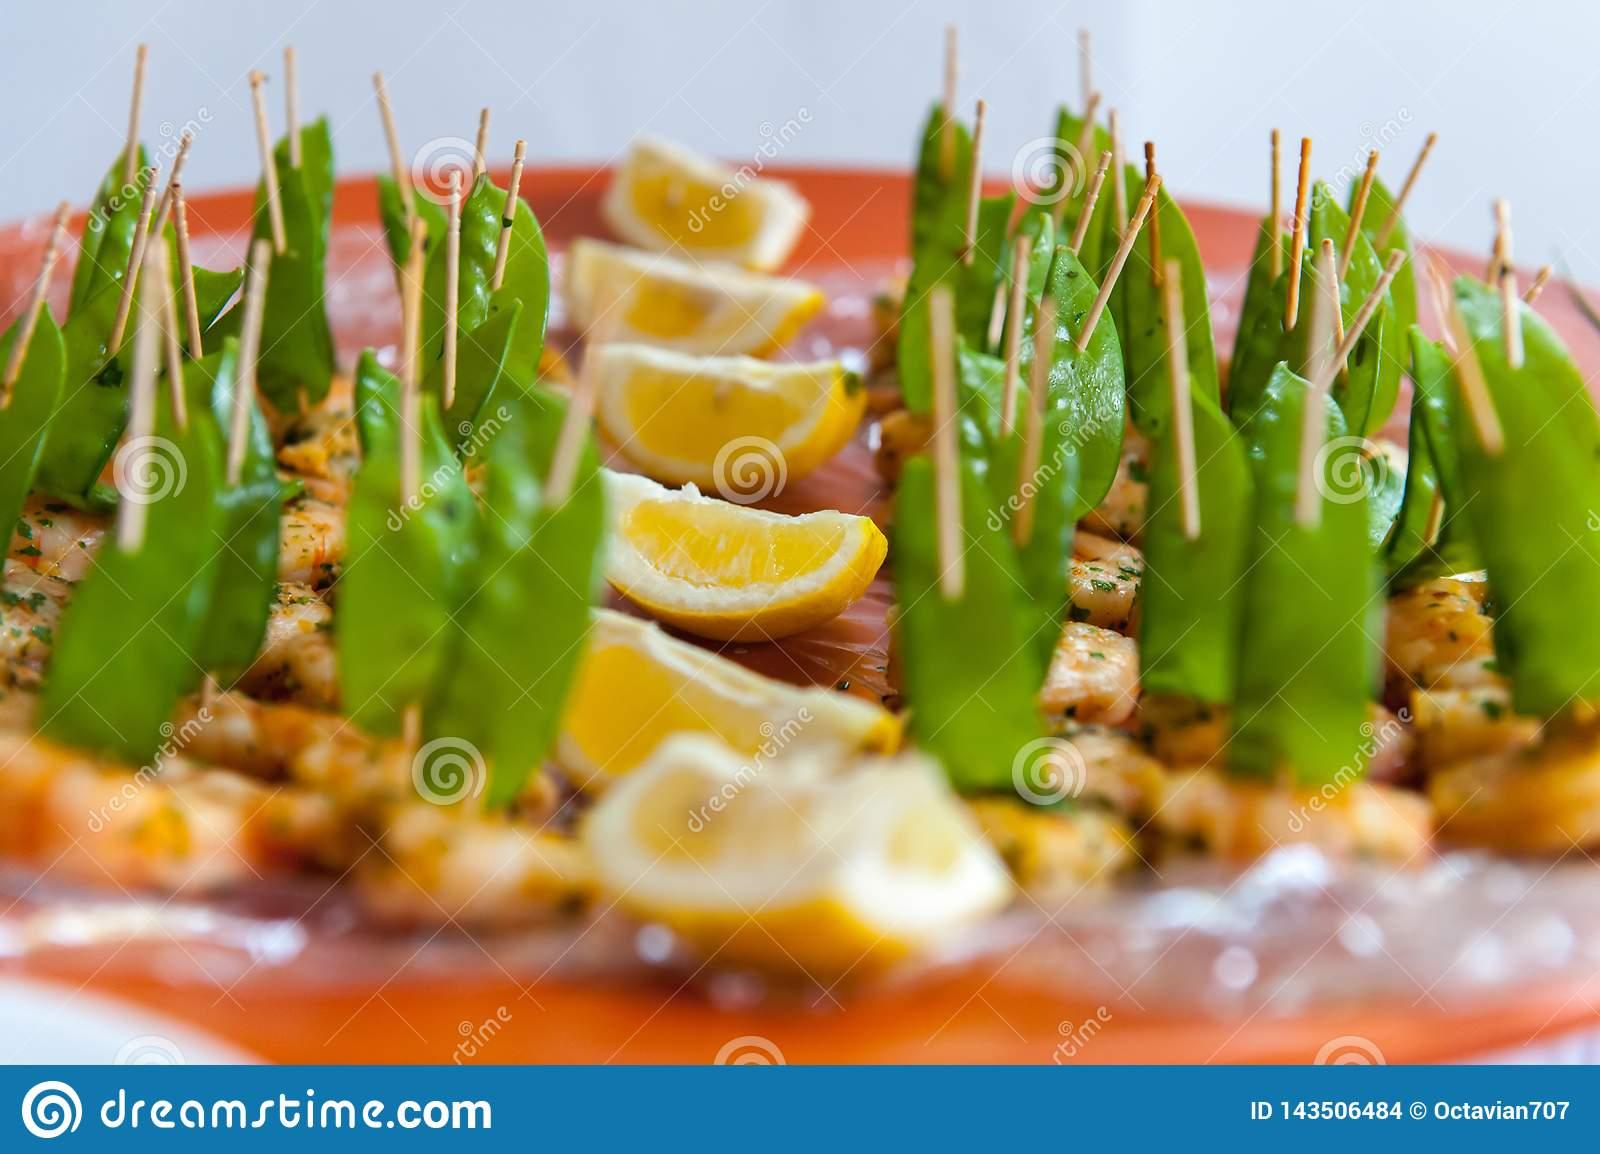 Chicken skewers with green beans and lemon